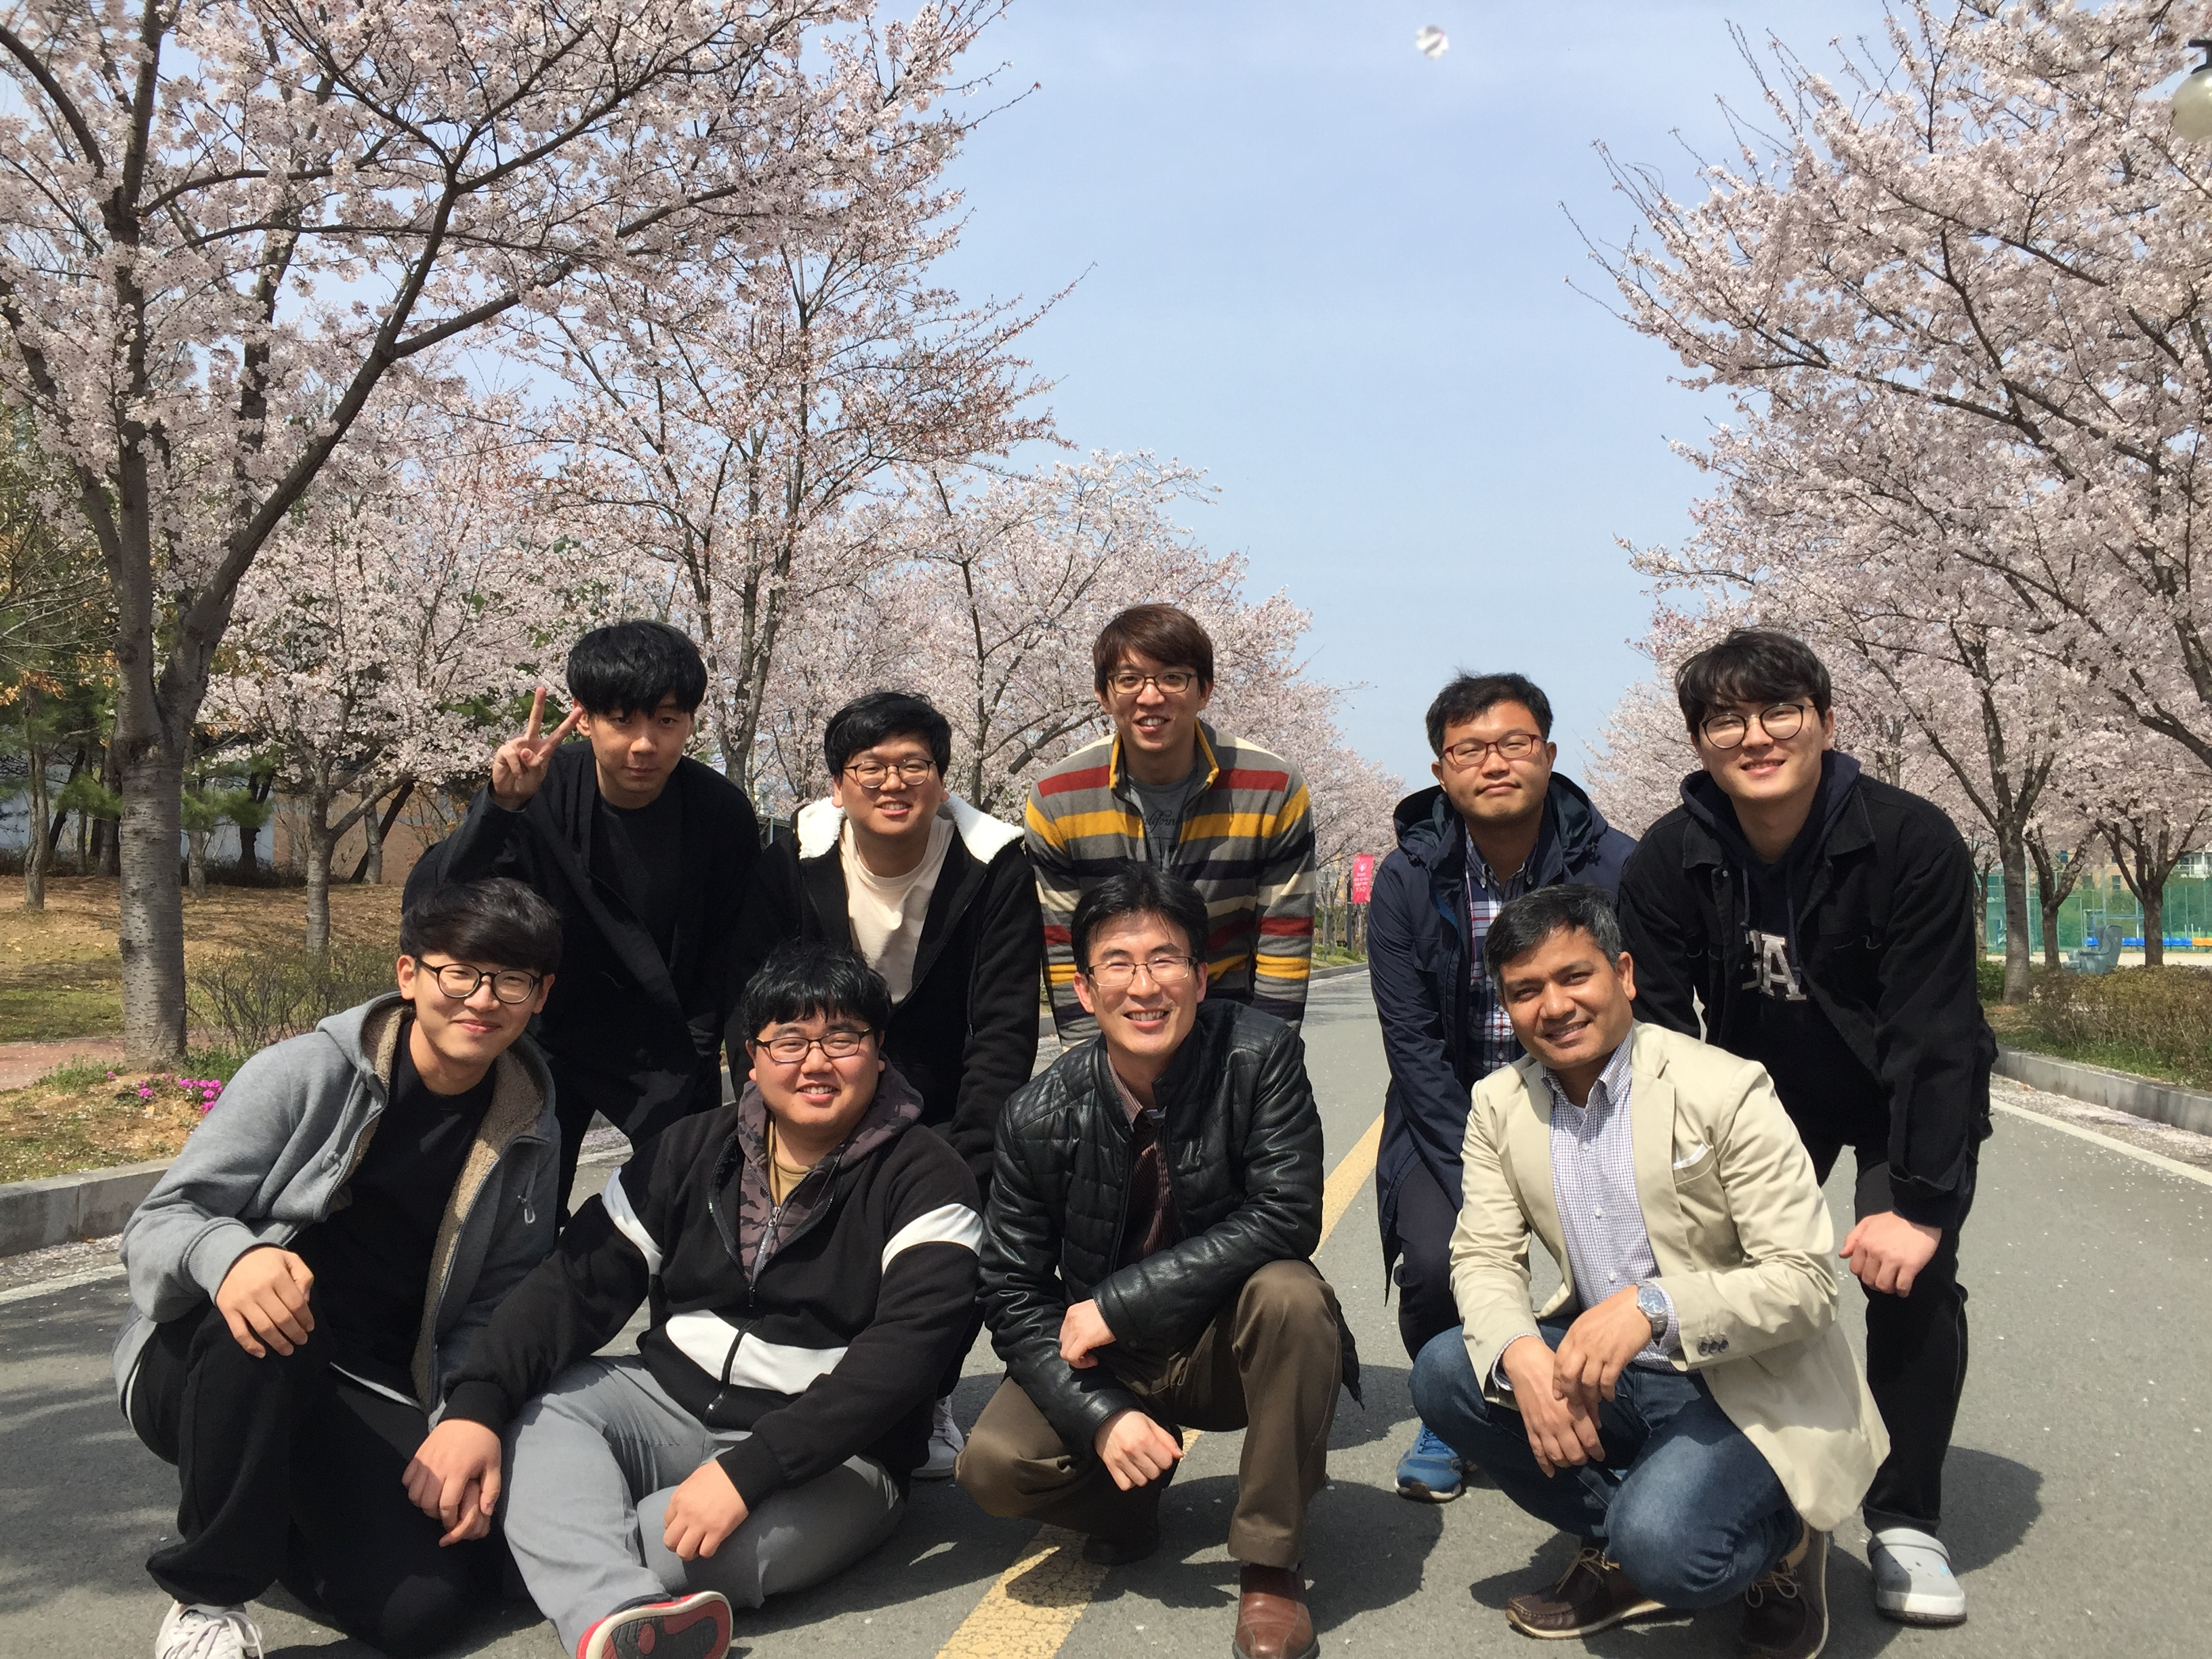 April2019 LAB Picnic to see Cherry Blossom 이미지